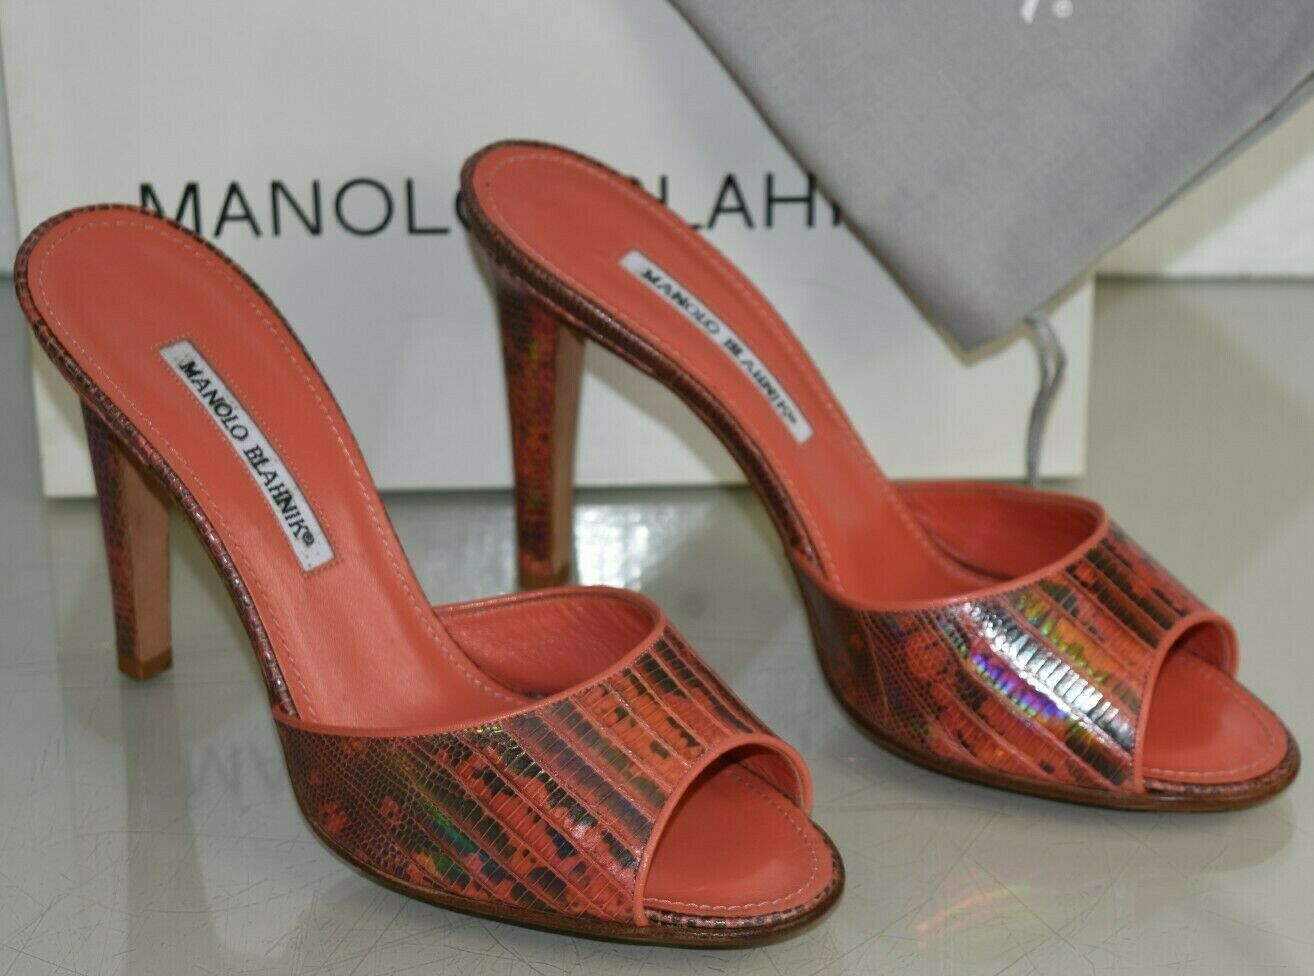 NEW Manolo Blahnik BAMUS Slide orange Grey EXOTIC LIZARD SKINS Mules shoes 40